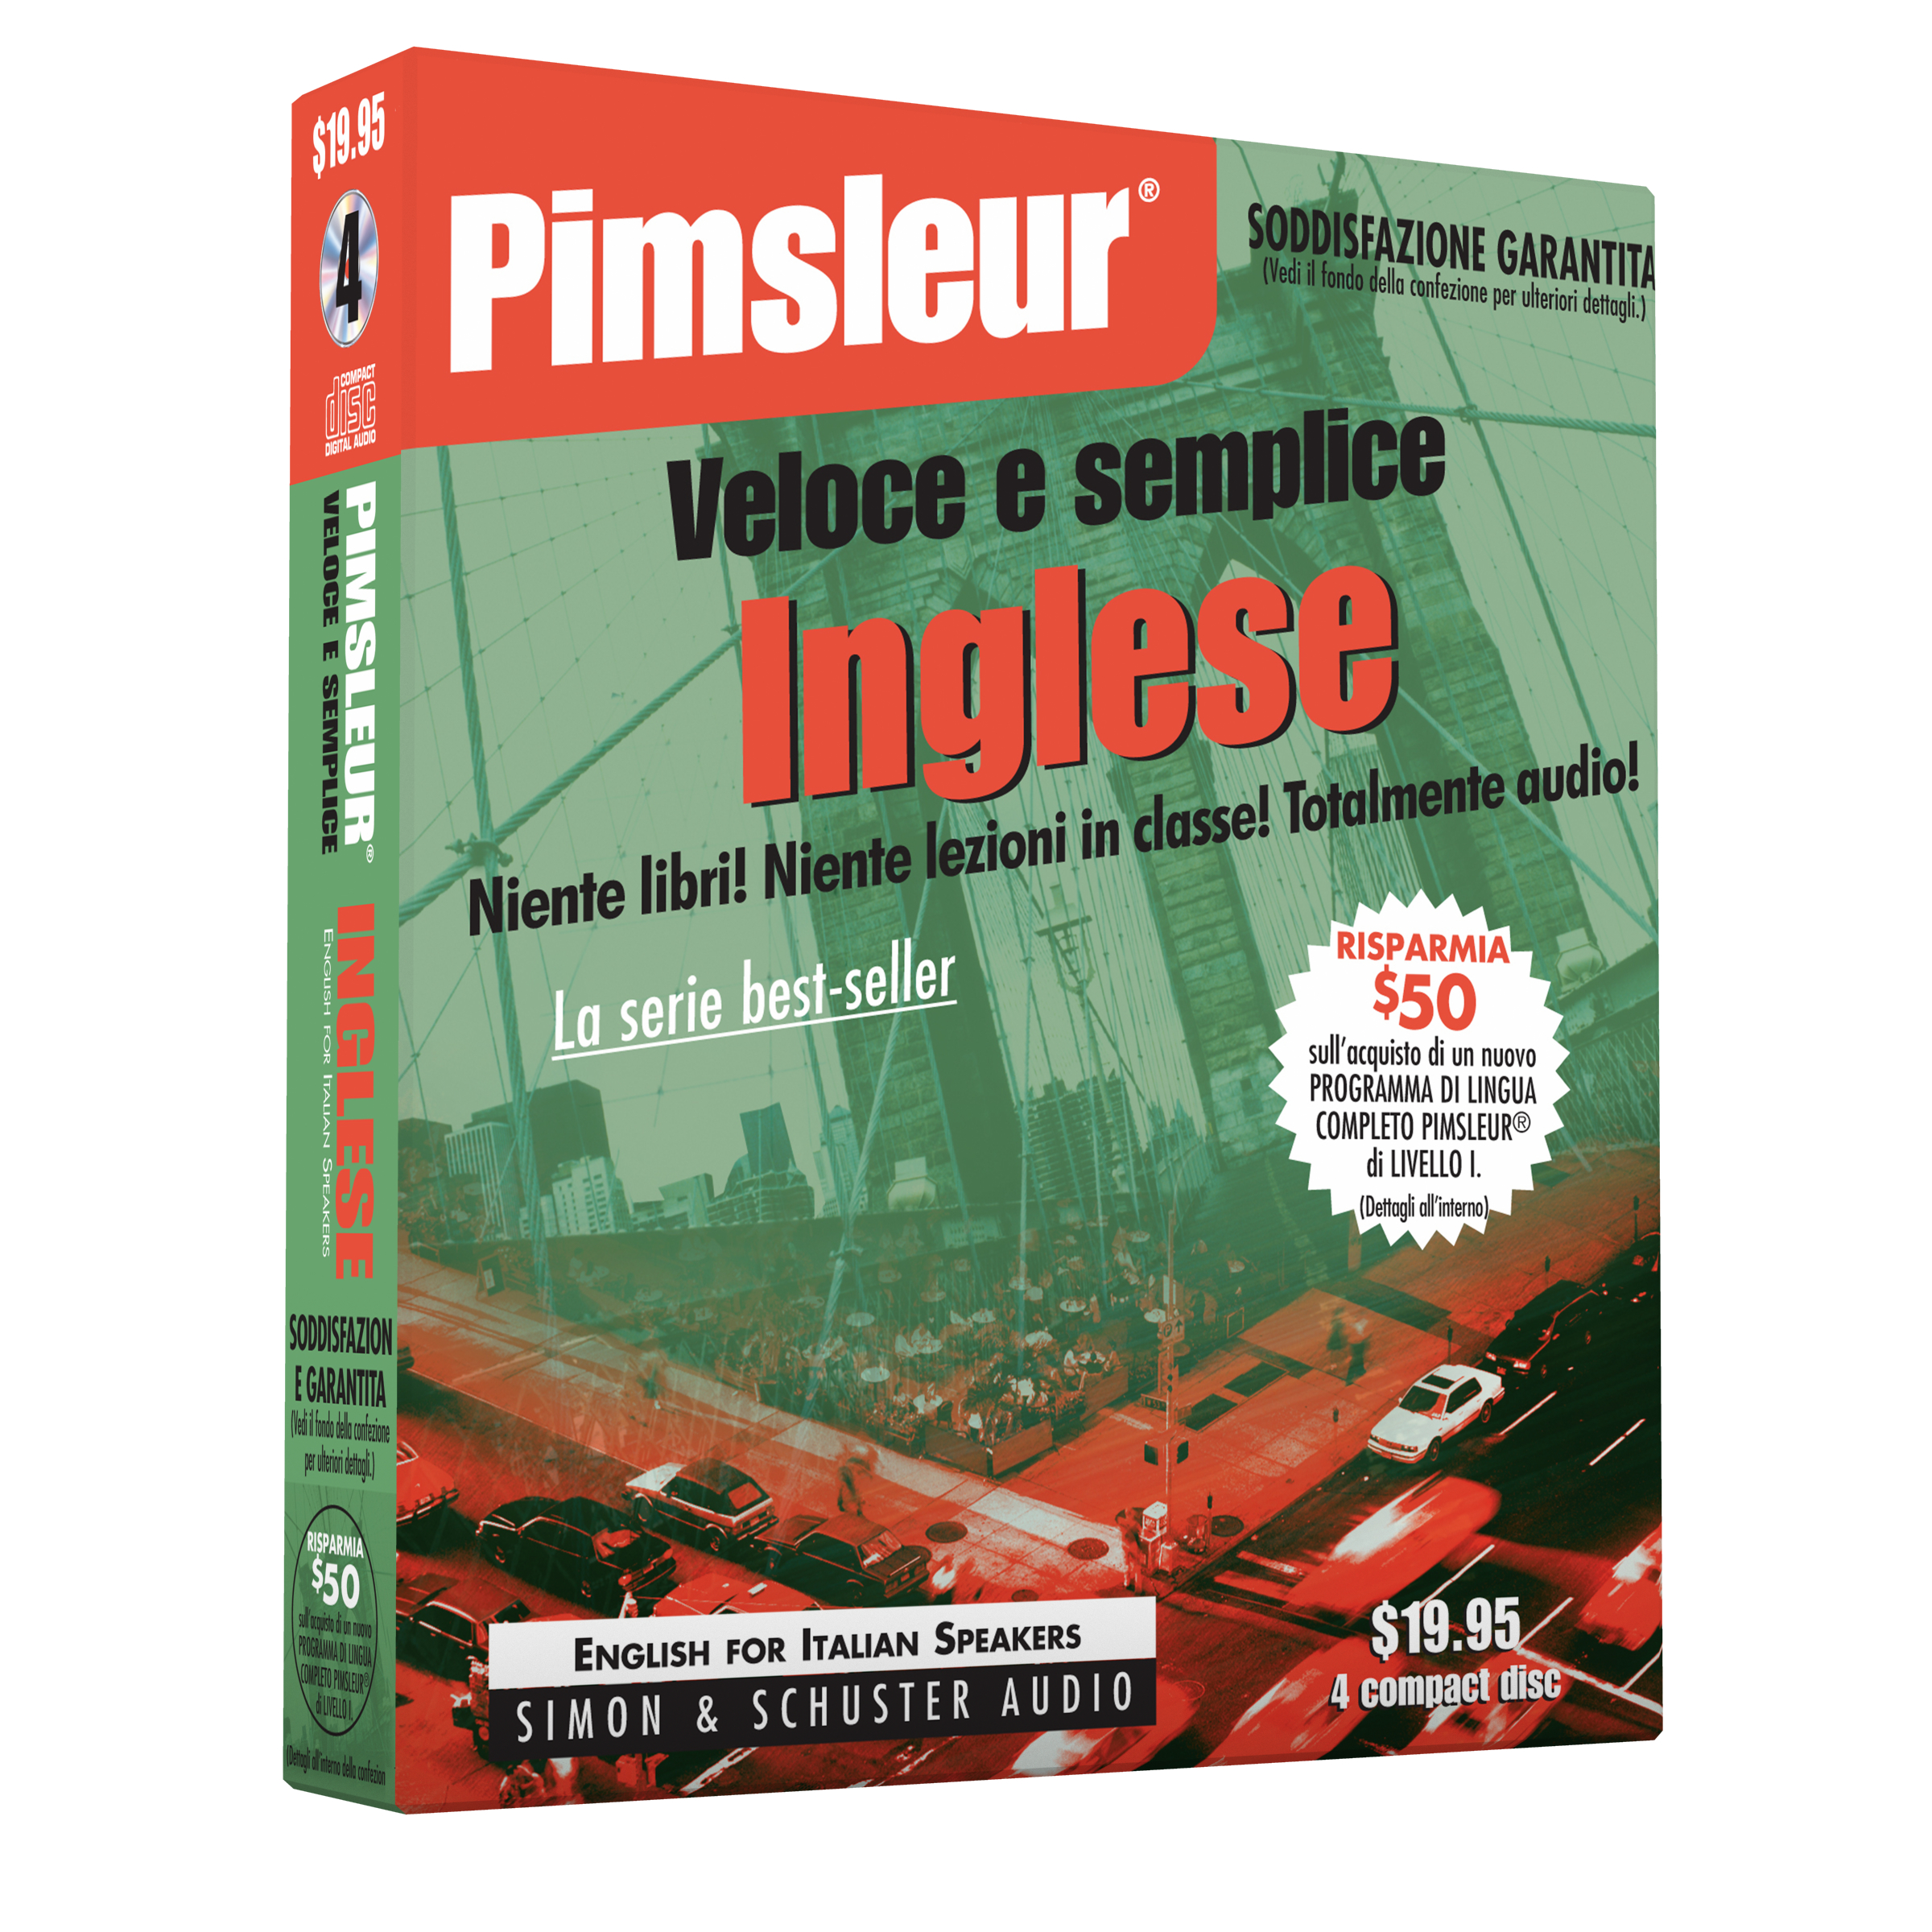 Pimsleur swedish comprehensive review